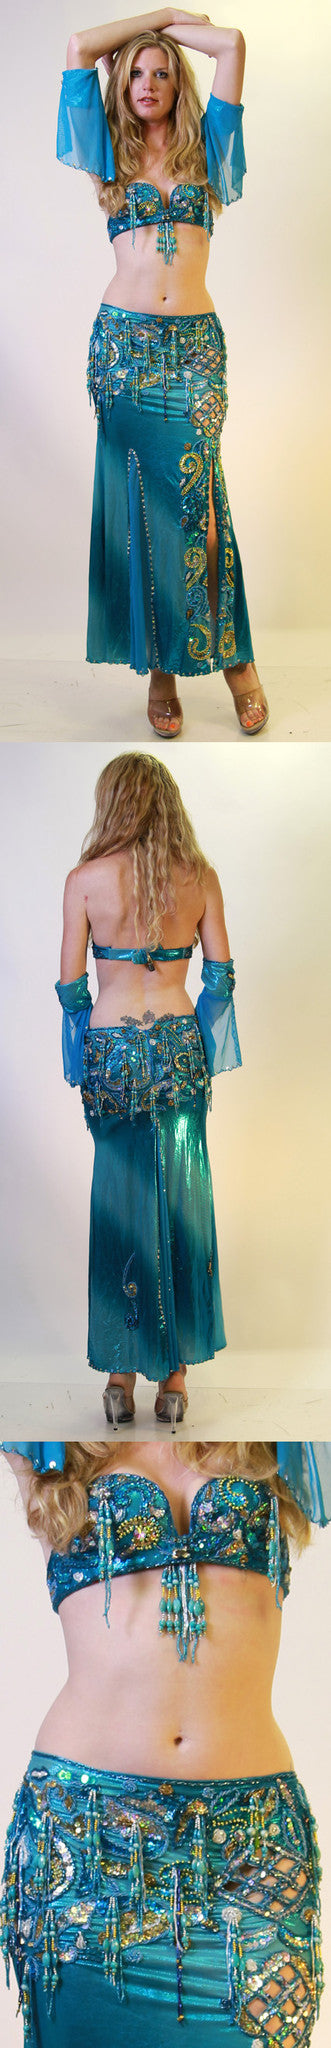 Two-Piece Costume